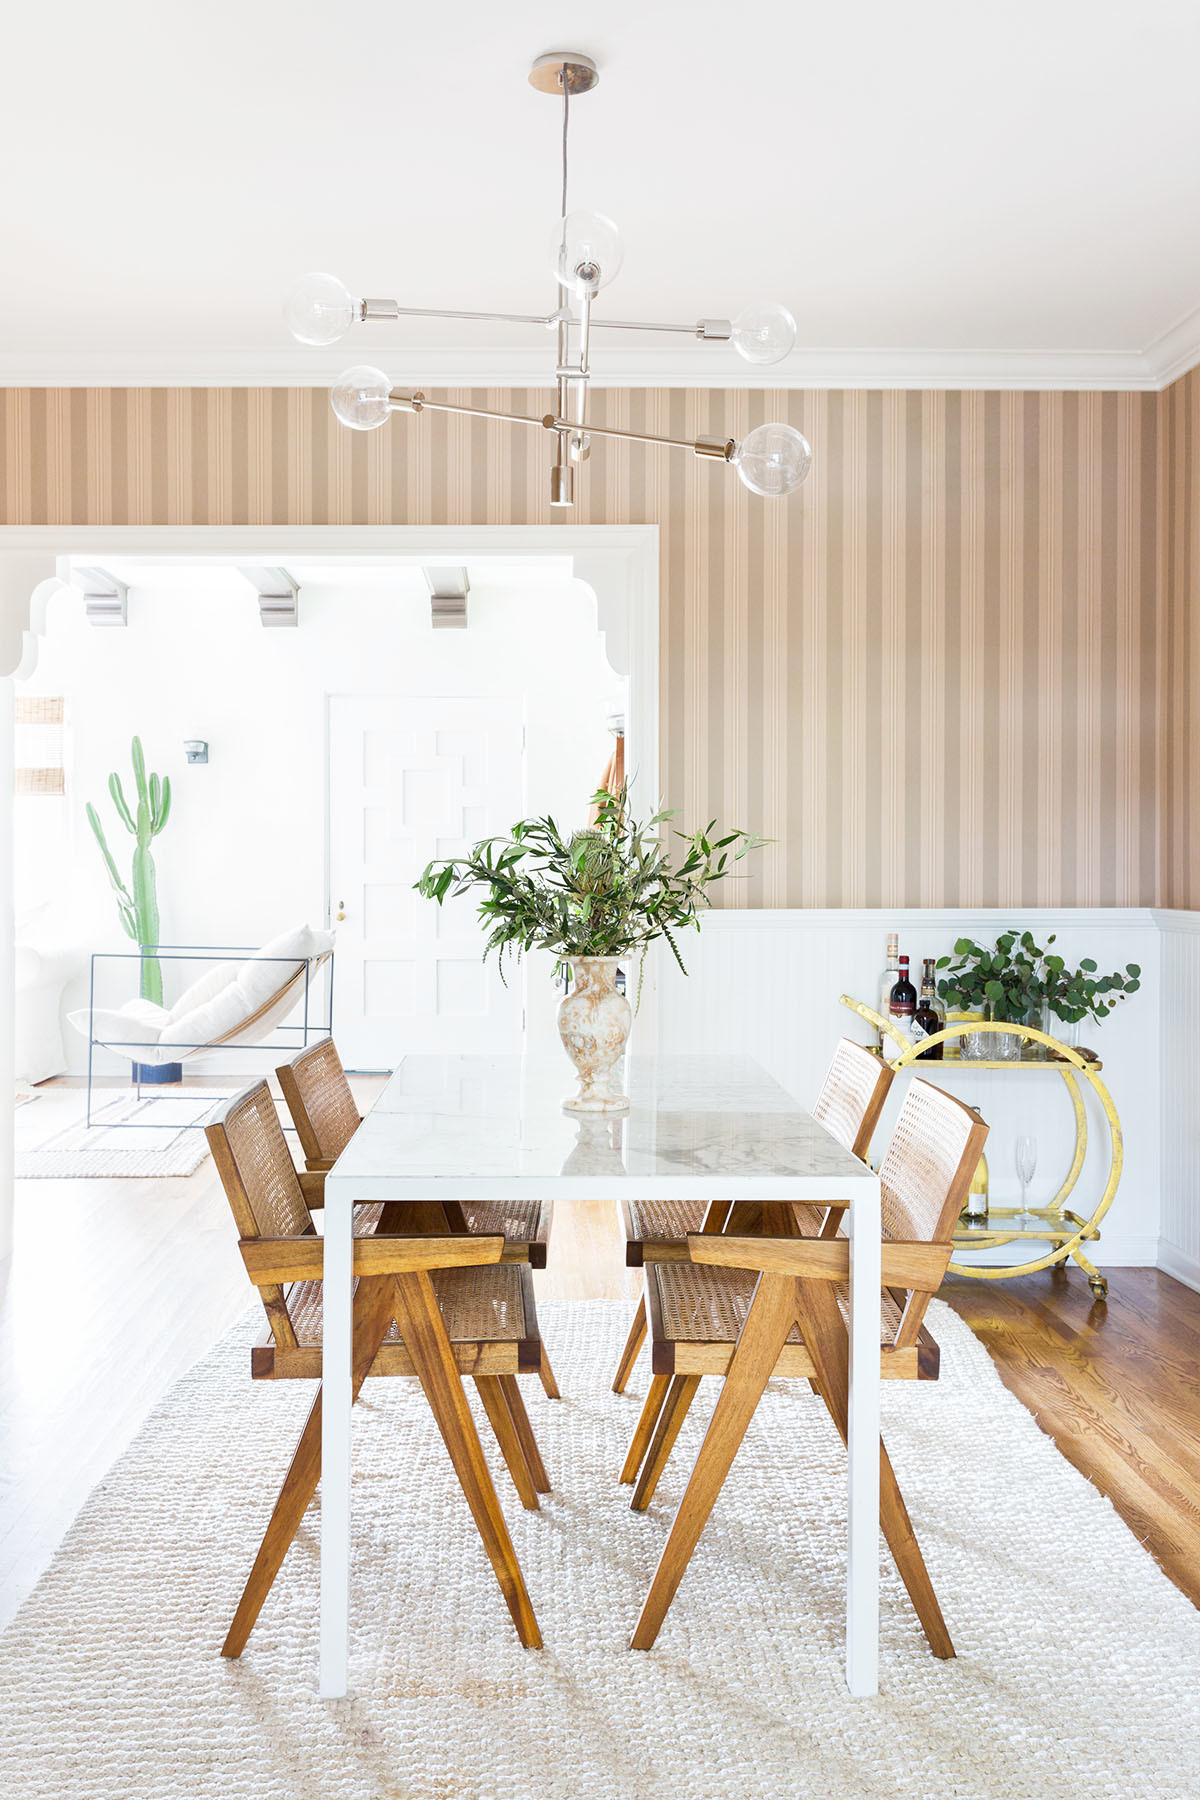 The couple's dining room boasts pinstriped wallpaper — an original feature they chose not to change after moving in. Vintage Dining Table | Custom Dining Chairs | Vintage Rug | Robert Siegel Studio Vase | Lulu and Georgia Bar Cart.